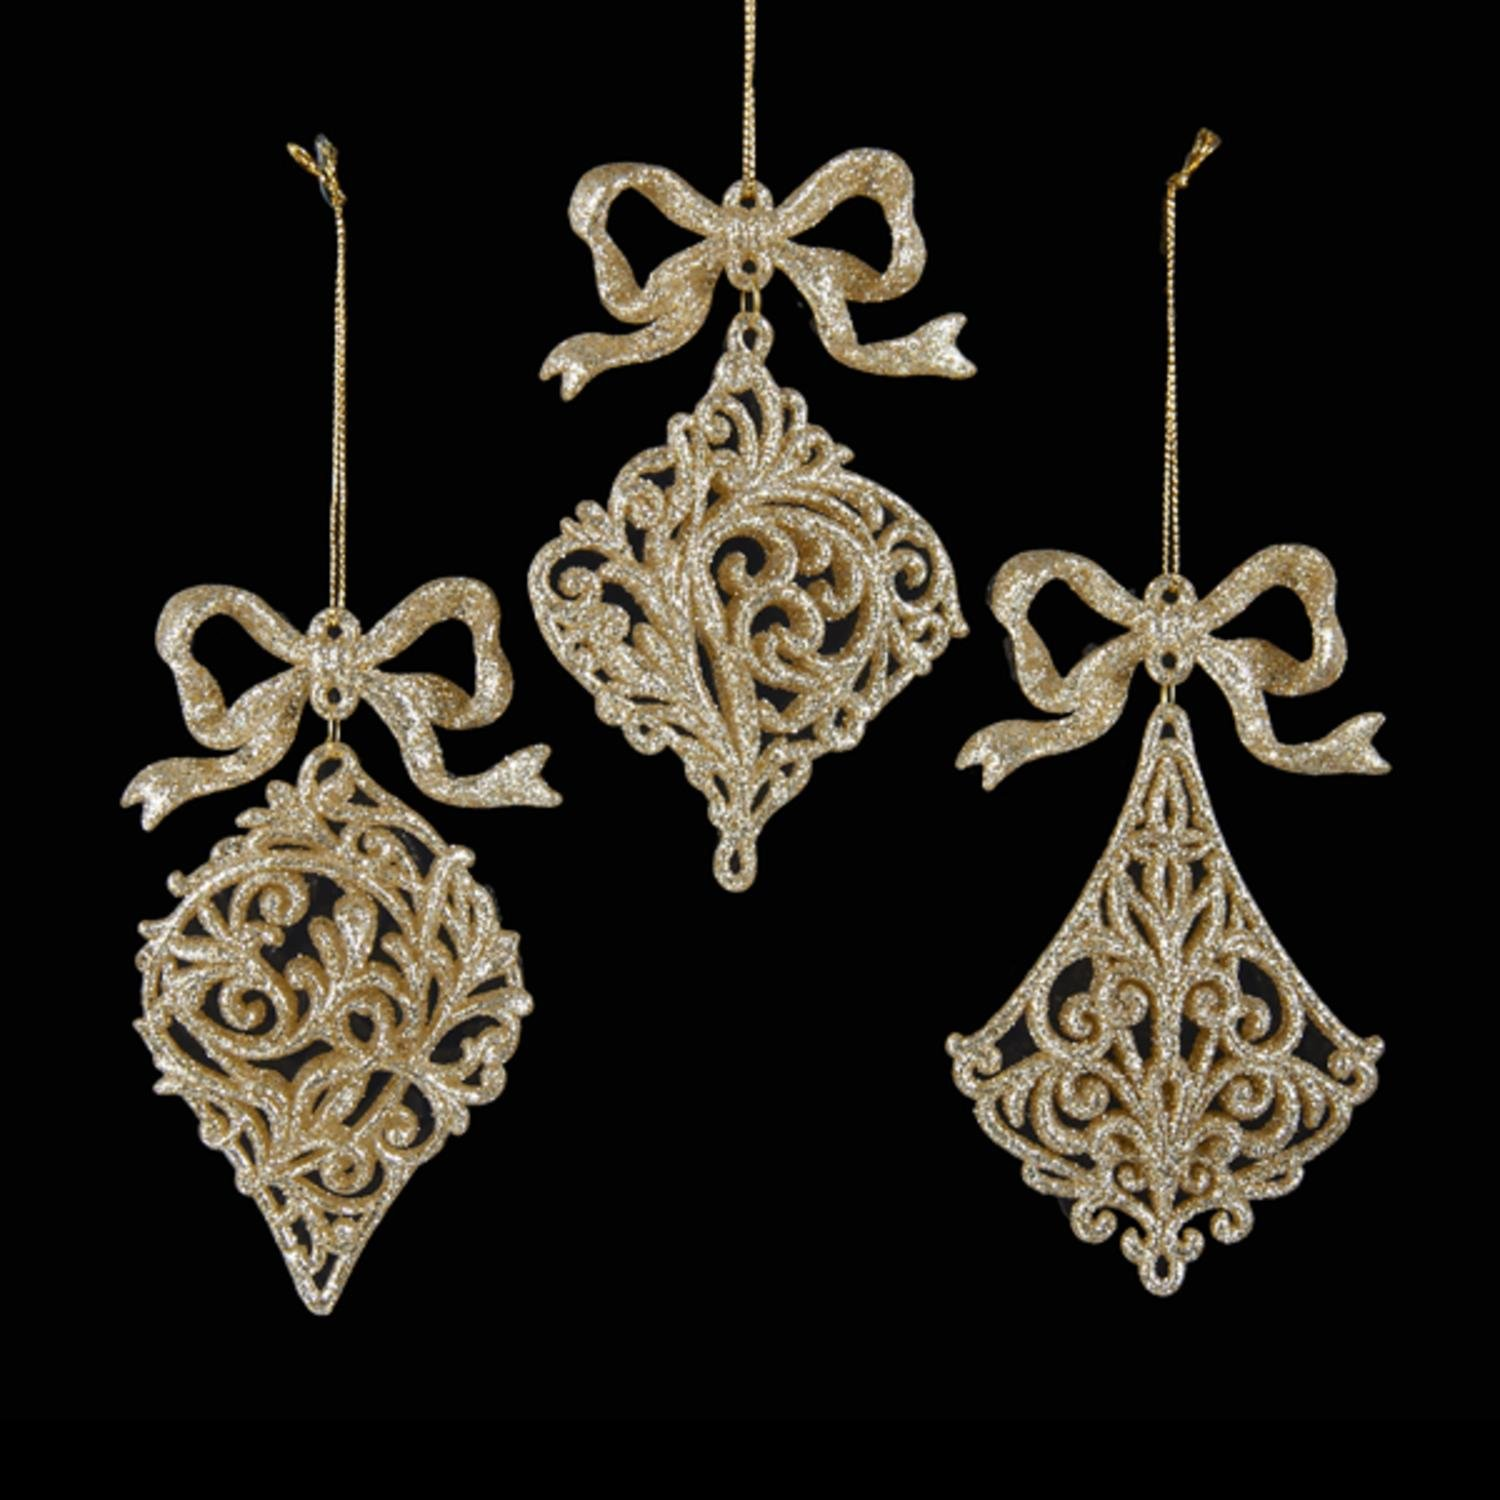 Pack of 24 Platinum Glitter Drenched Filigree Onion, Drop and Pendant Bow Accented Finial Christmas Ornaments 5''